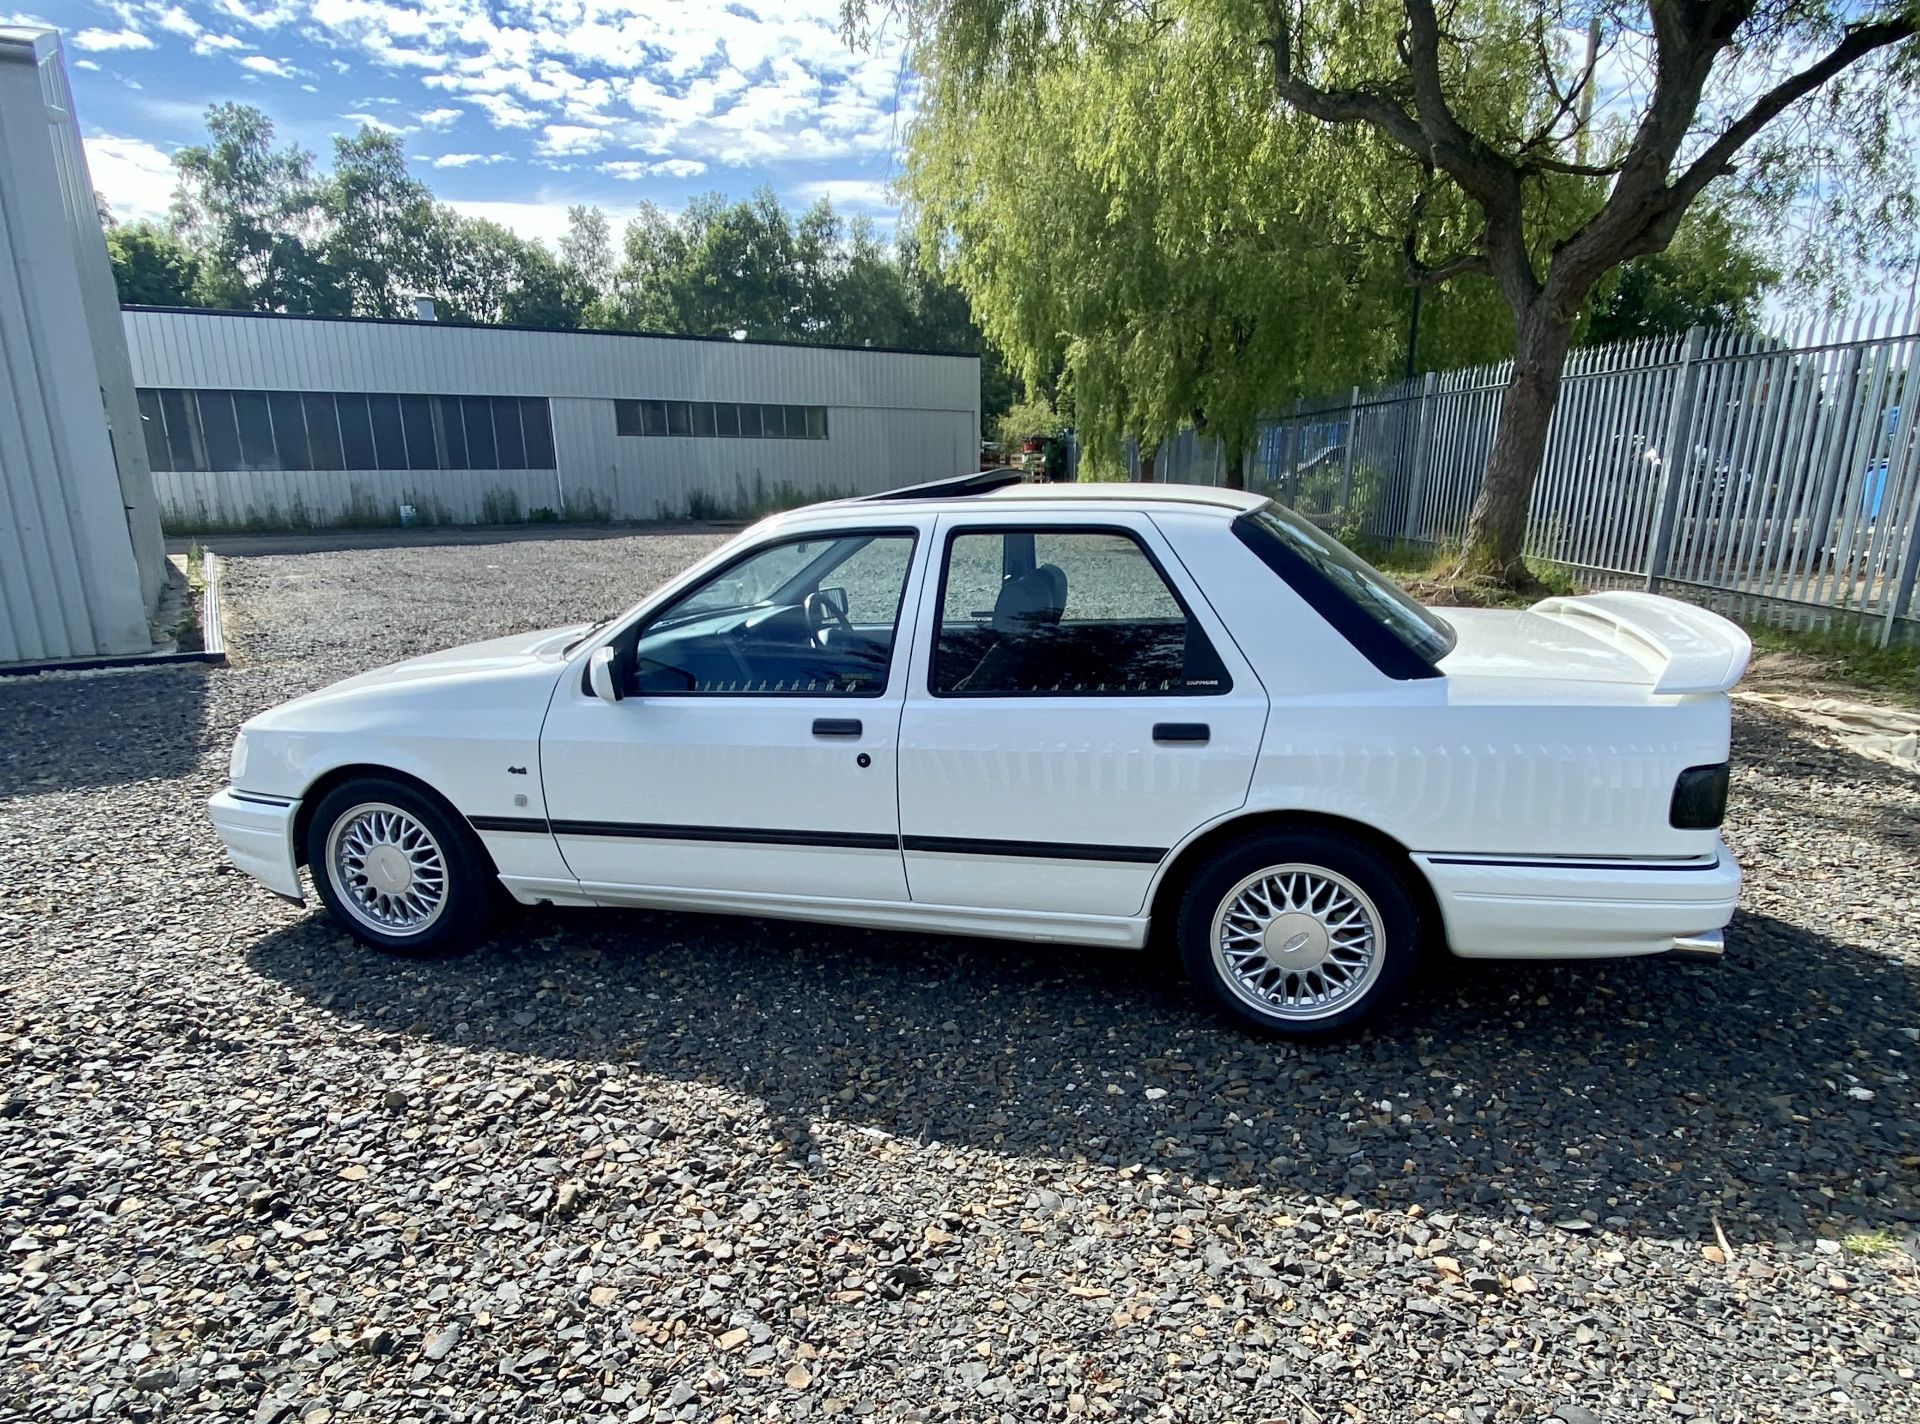 Ford Sierra Sapphire Cosworth 4x4 - Image 12 of 55